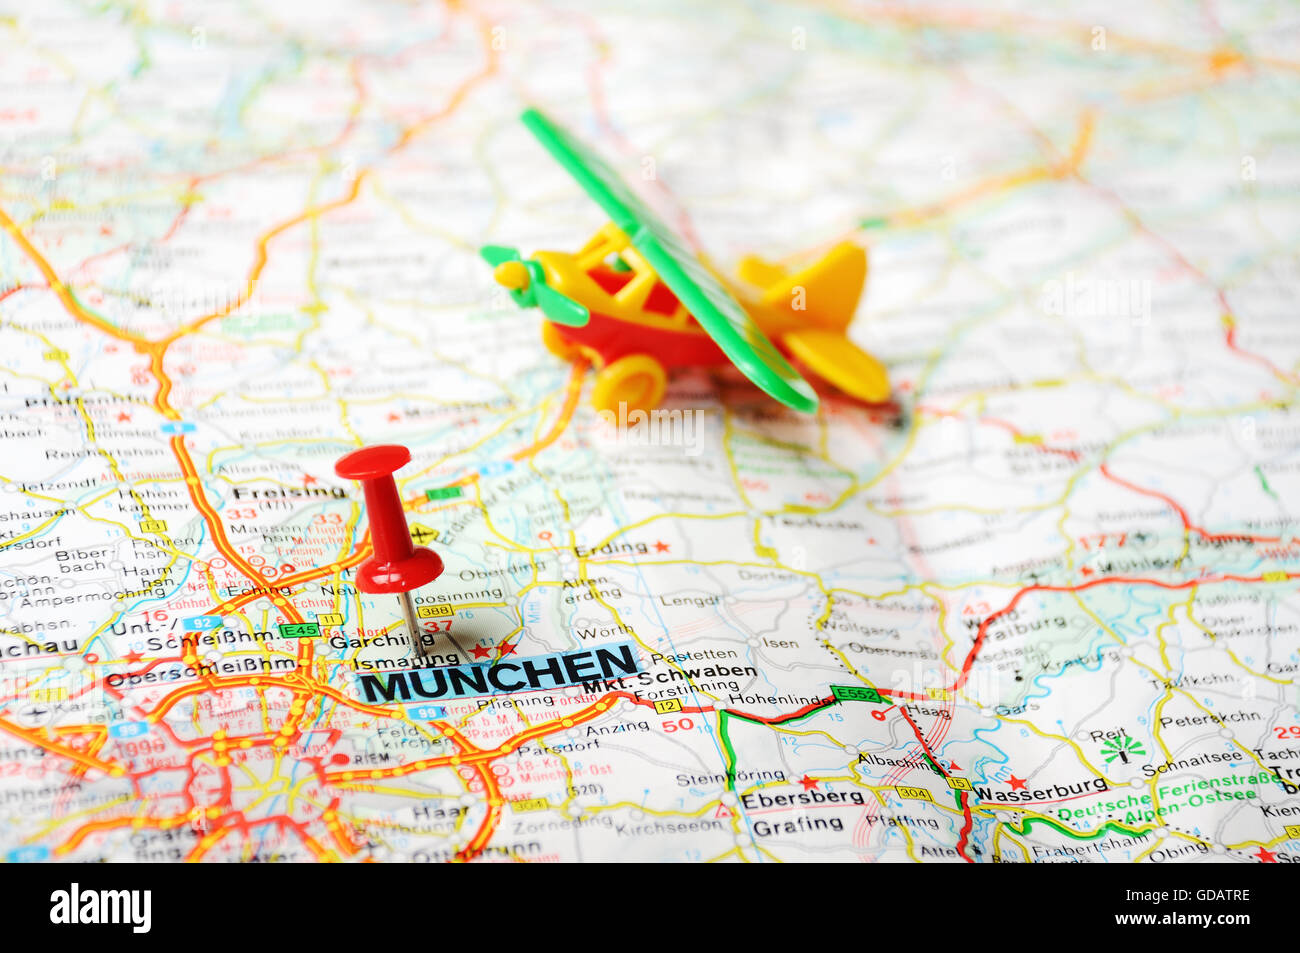 Close Up Of Munich Germany Map With Red Pin And Airplane Toy - Munchen germany map